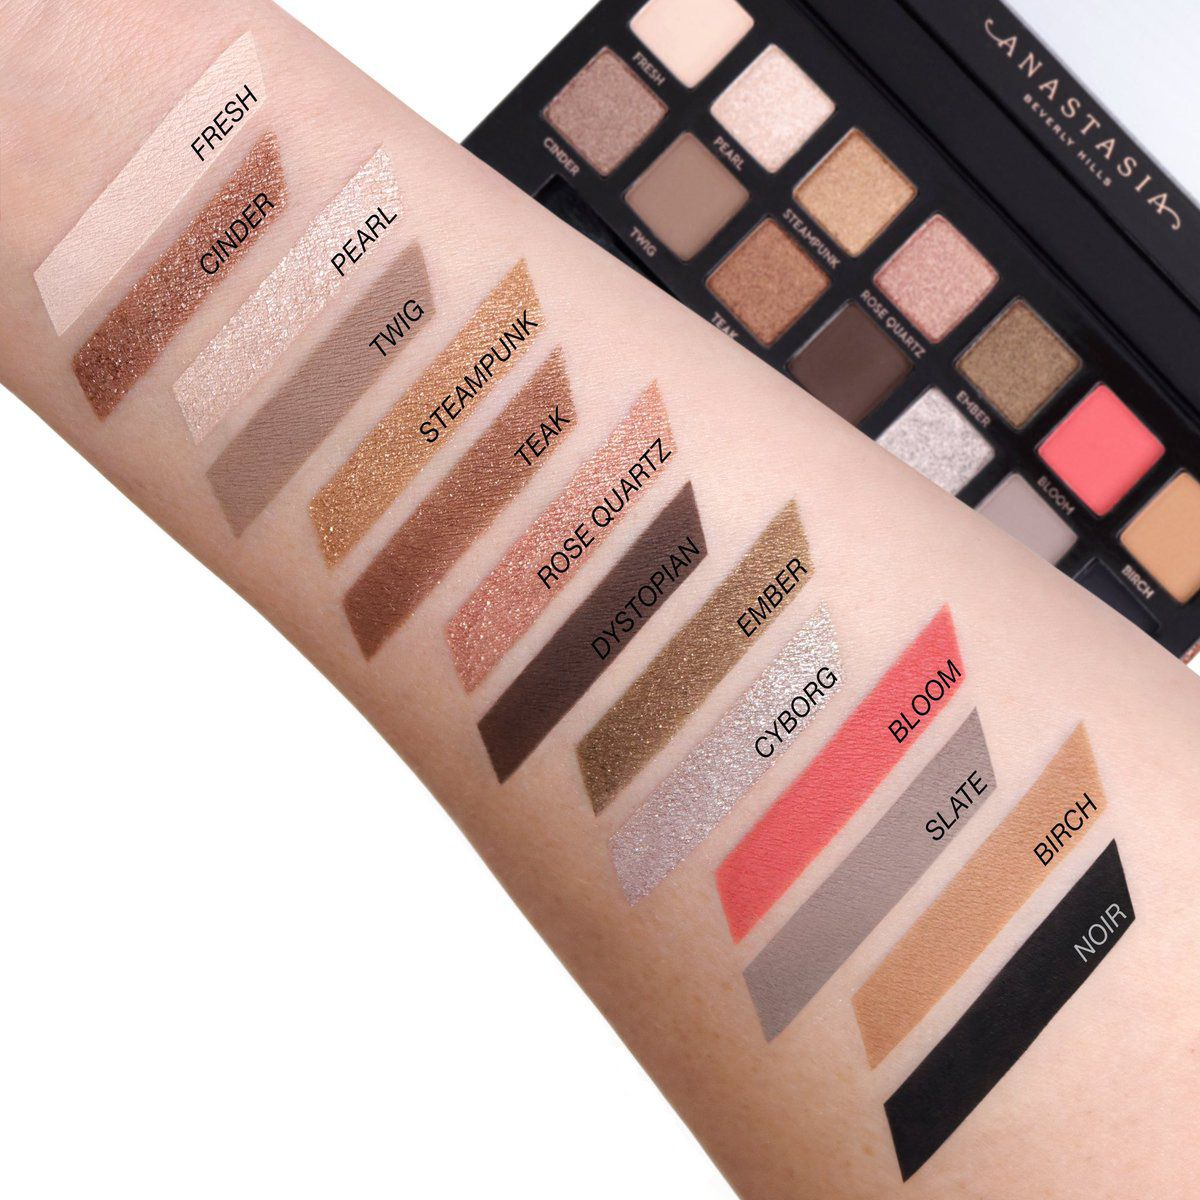 Fashion style Hairbest and Beauty drugstore eyeshadow palettes for lady